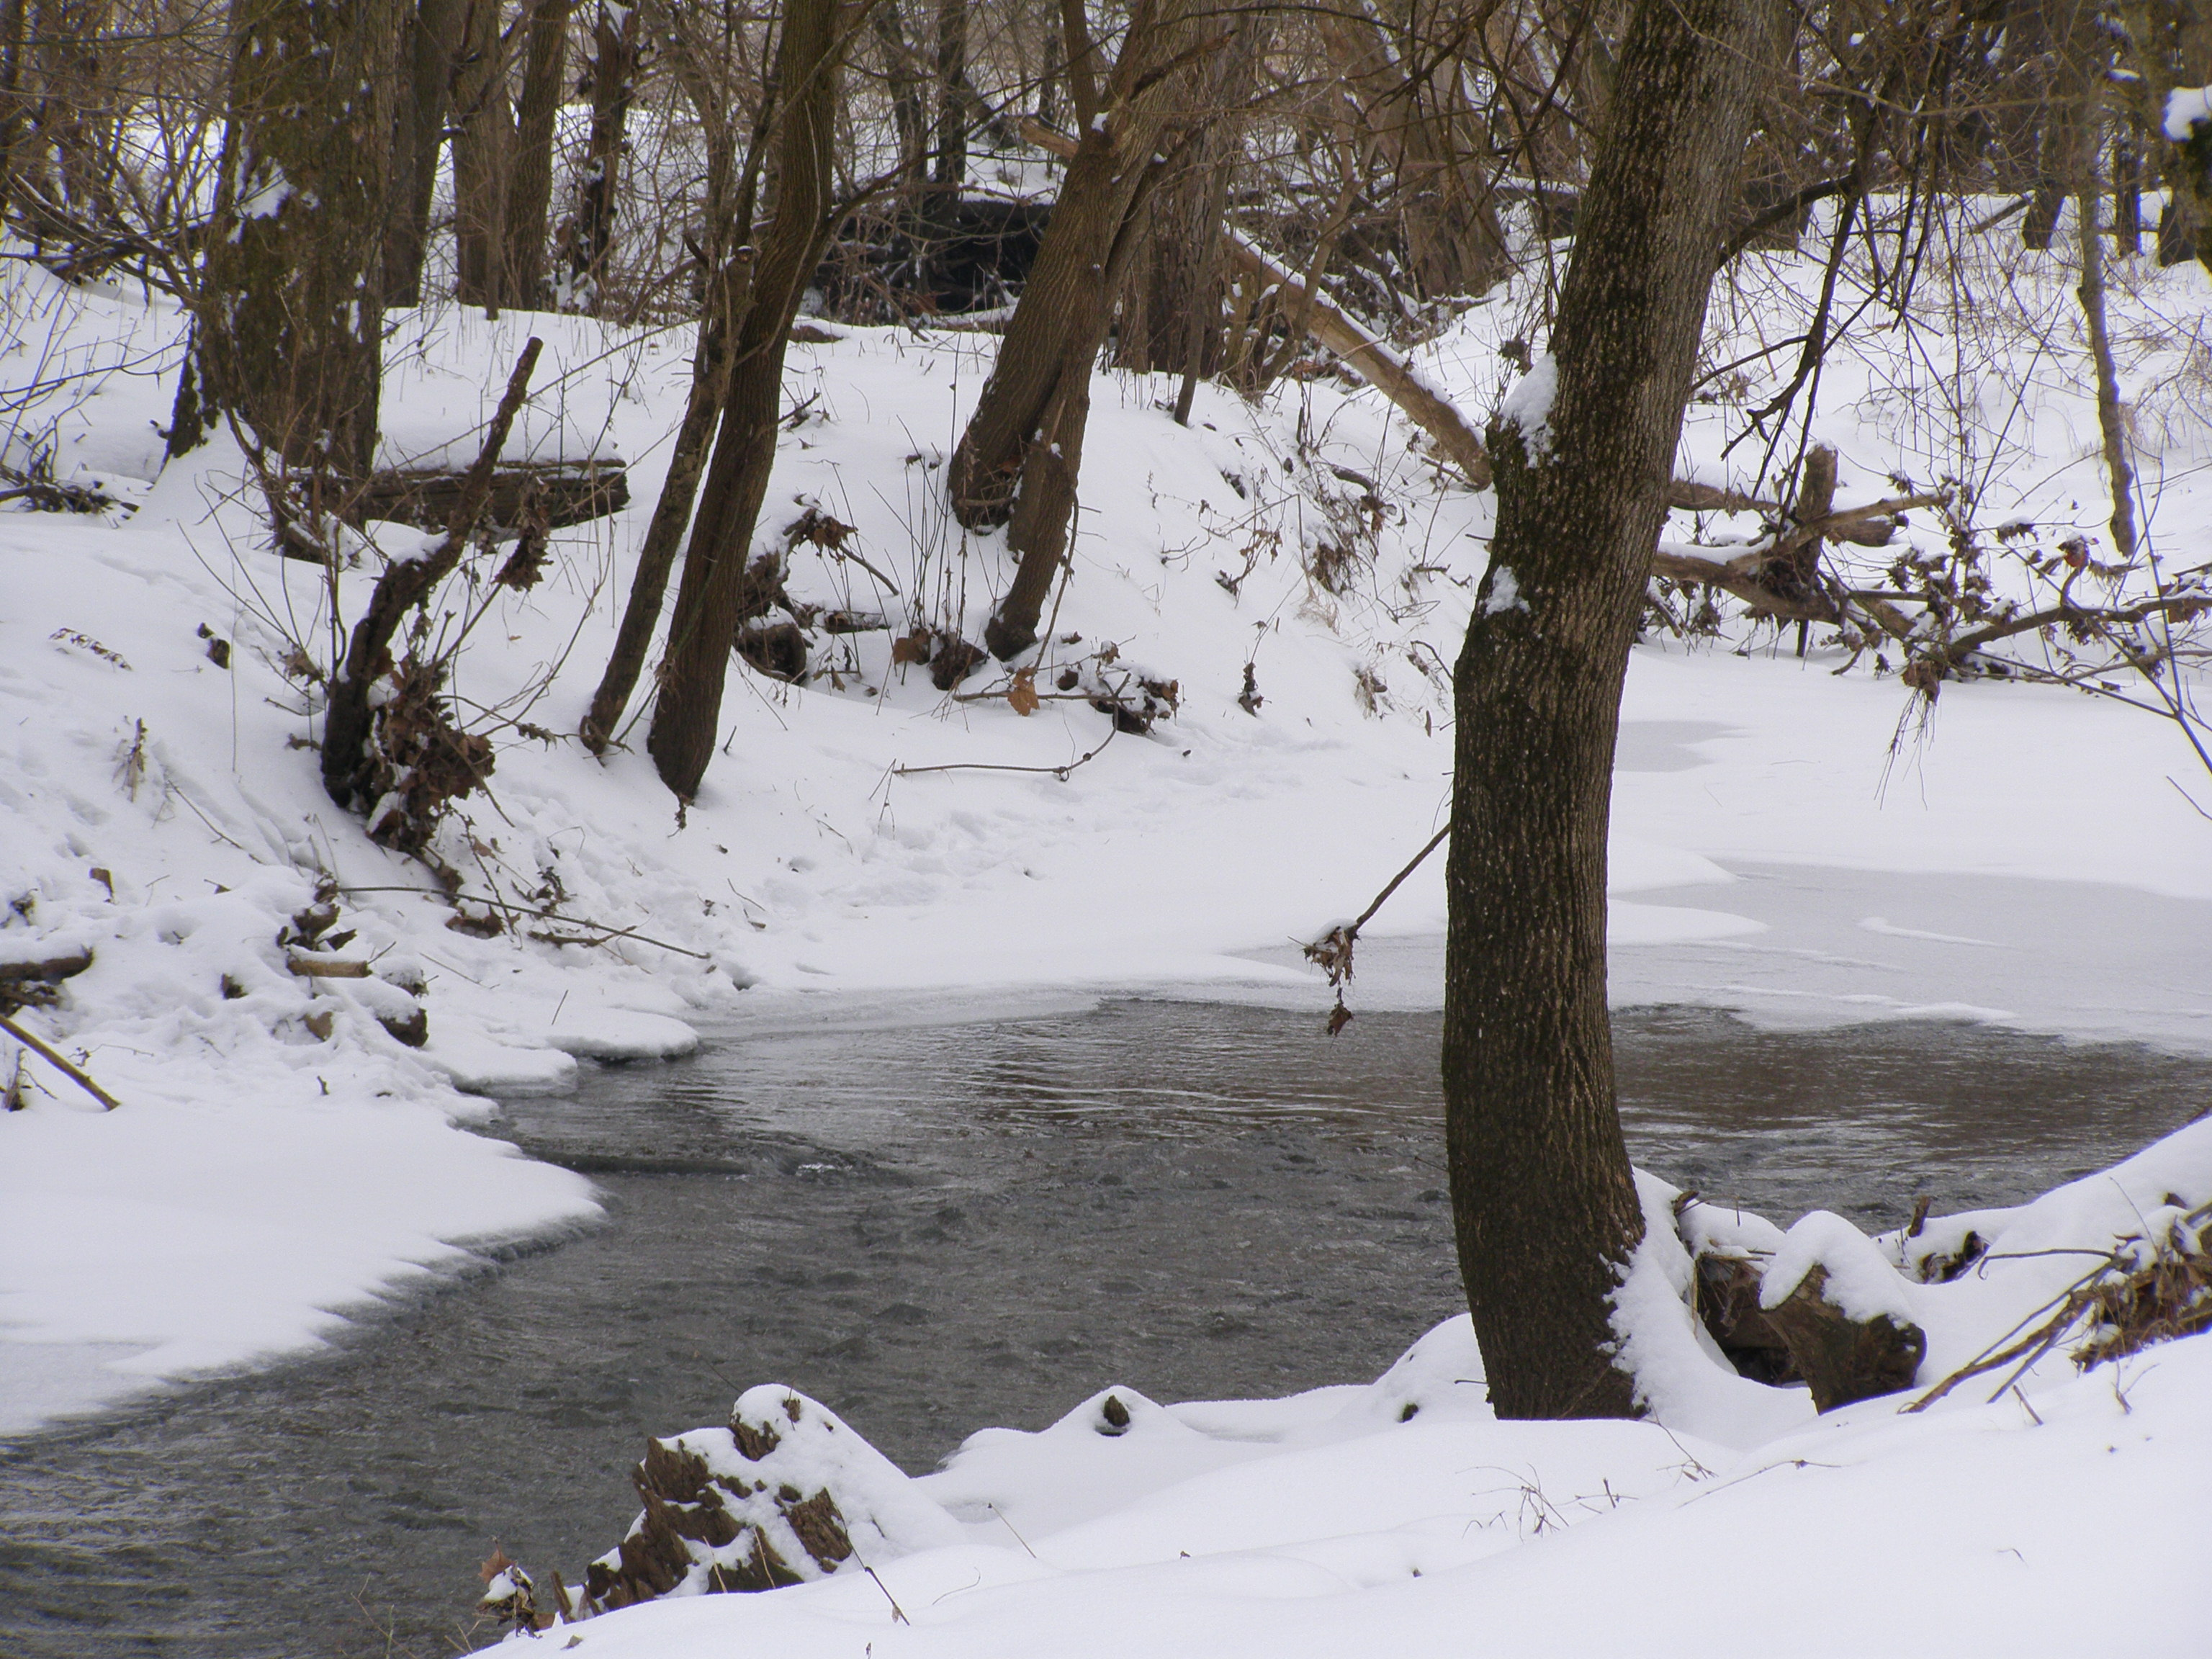 Winter at Rock Springs Conservation Area